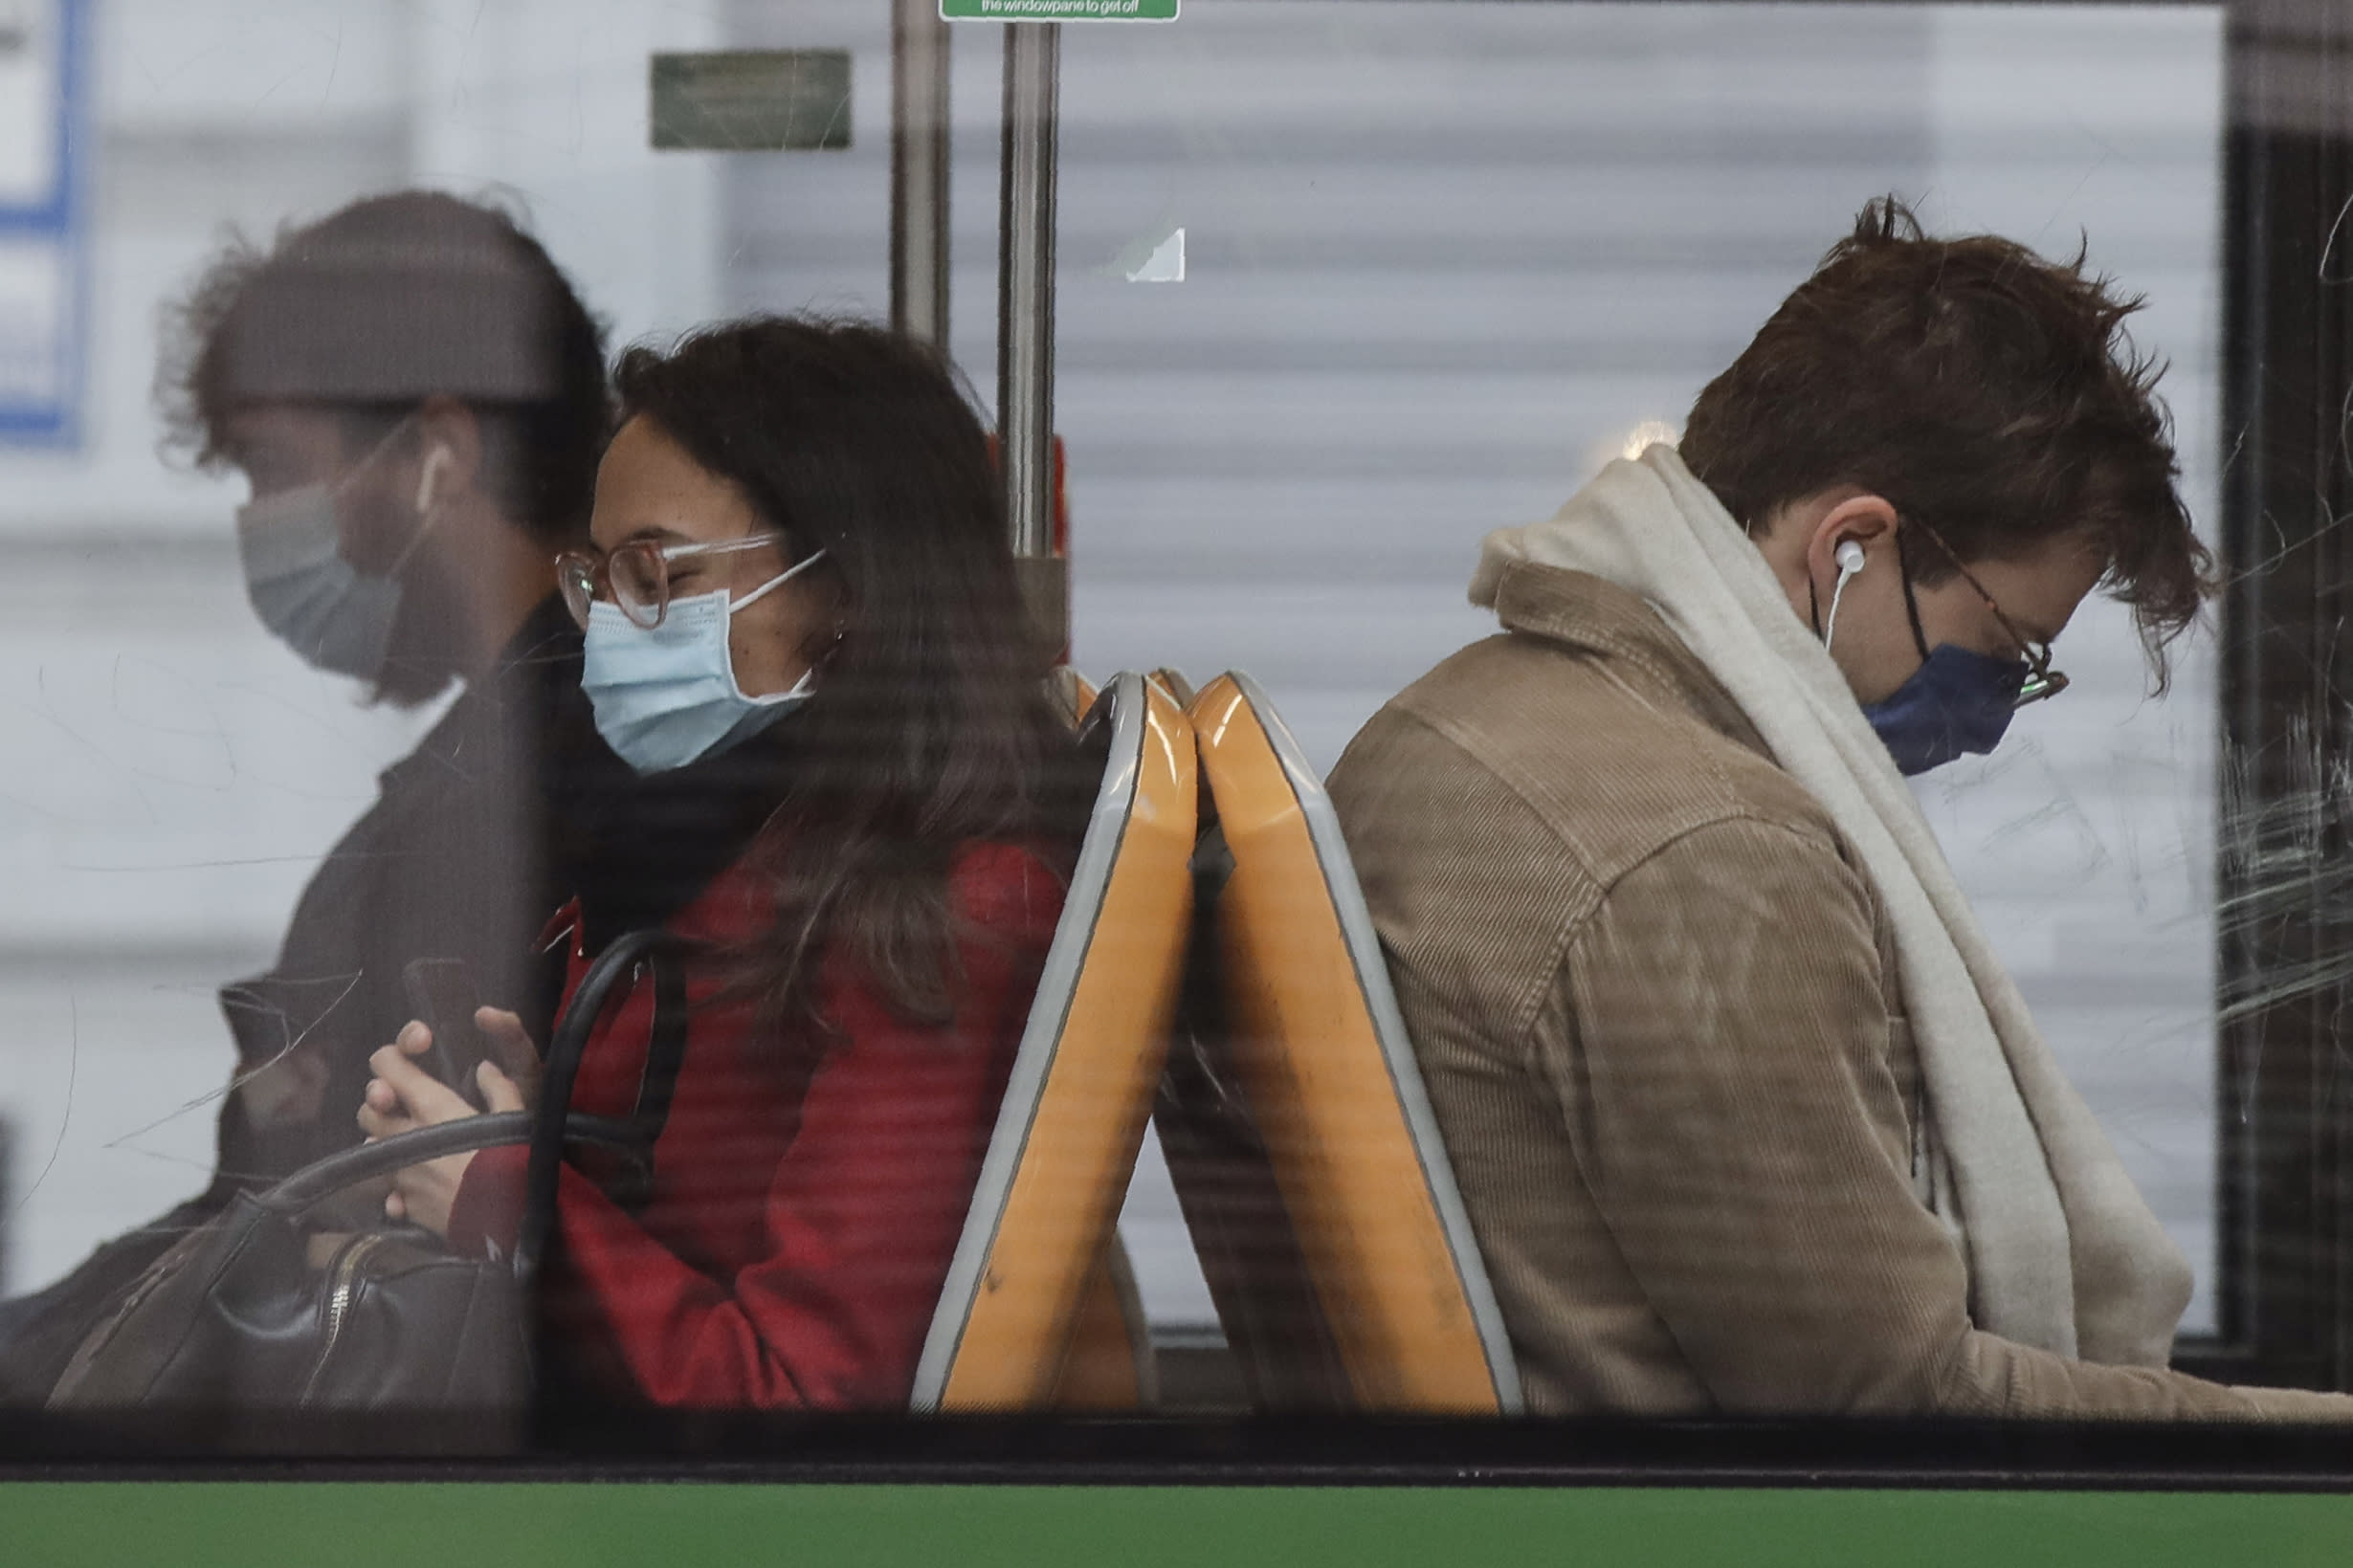 People wearing face masks to prevent the spread of COVID-19 sit on a bus, in Milan, Italy, Wednesday, Oct. 14, 2020. Italian Premier Giuseppe Conte says the aim of Italy's new anti-virus restrictions limiting nightlife and socializing is to head off another generalized lockdown. (AP Photo/Luca Bruno)